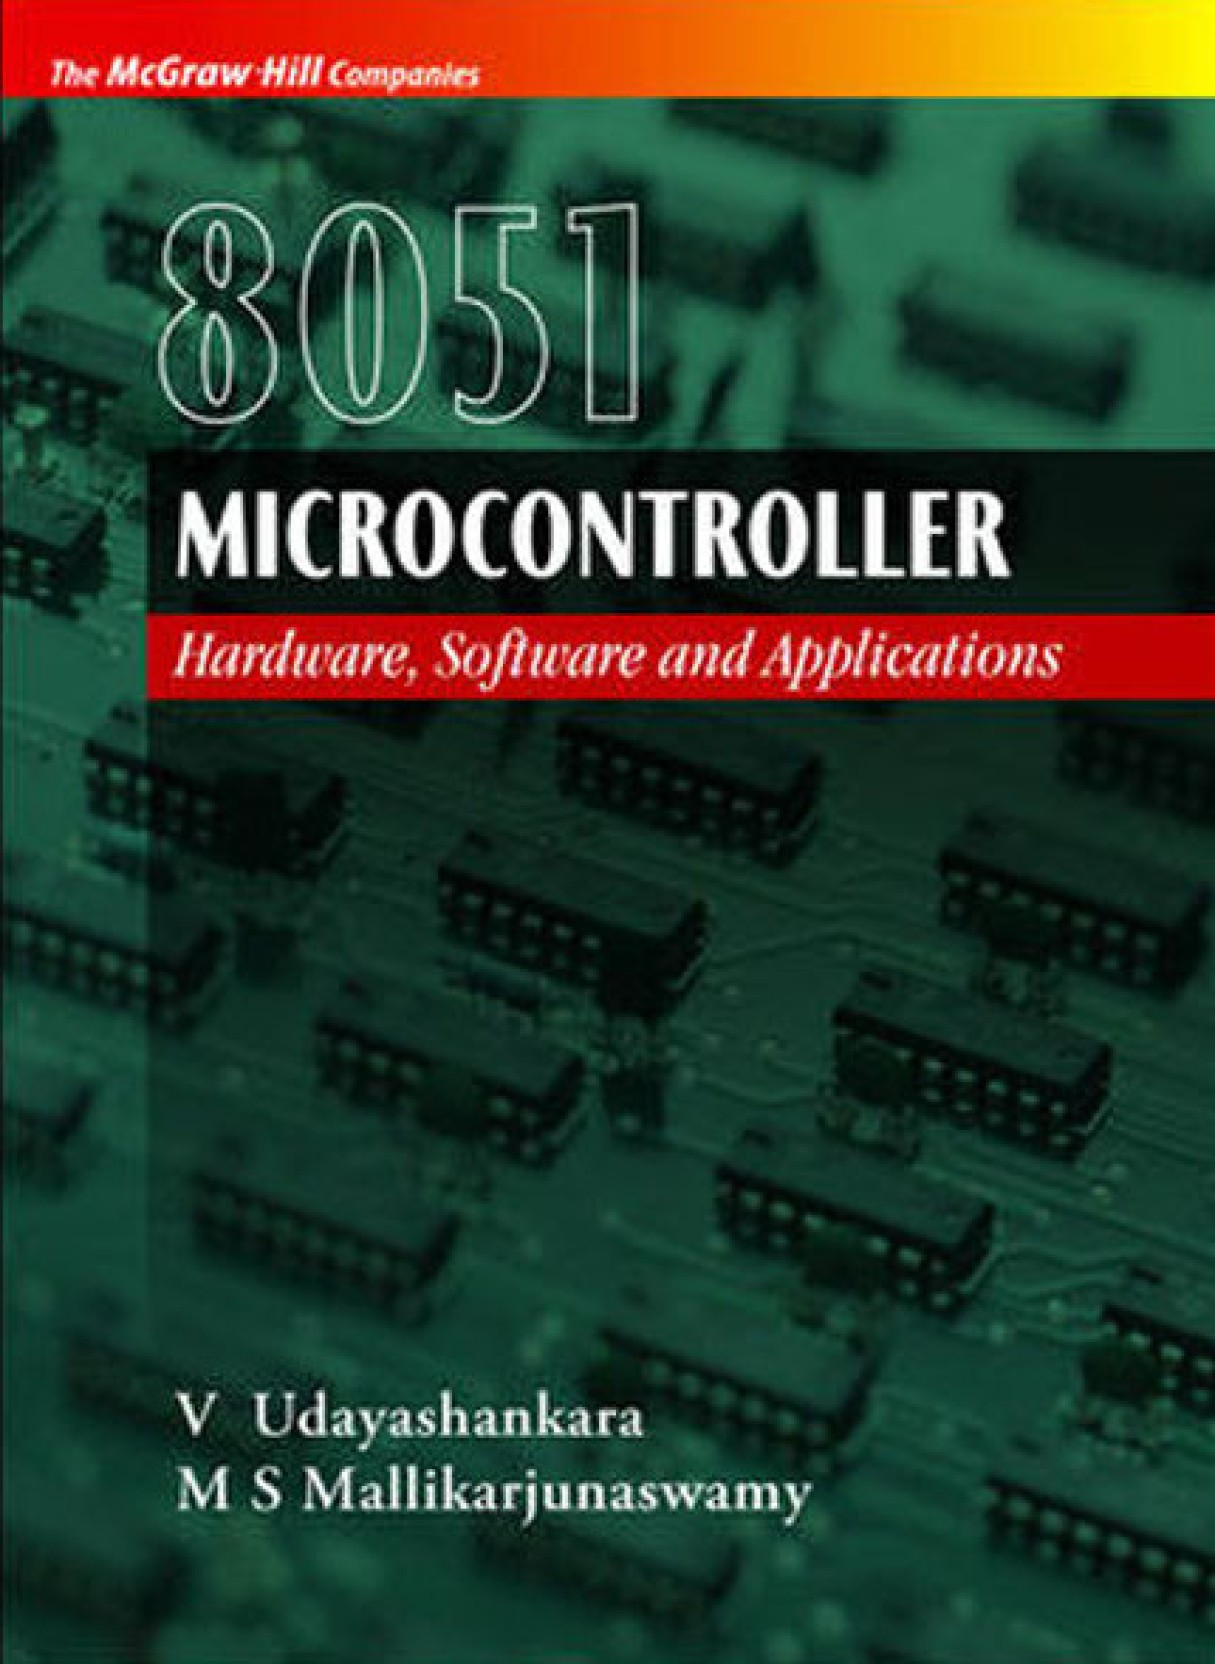 8051 Microcontroller Hardware Software And Applications 1st Edition Projects For Engineering Students Add To Cart